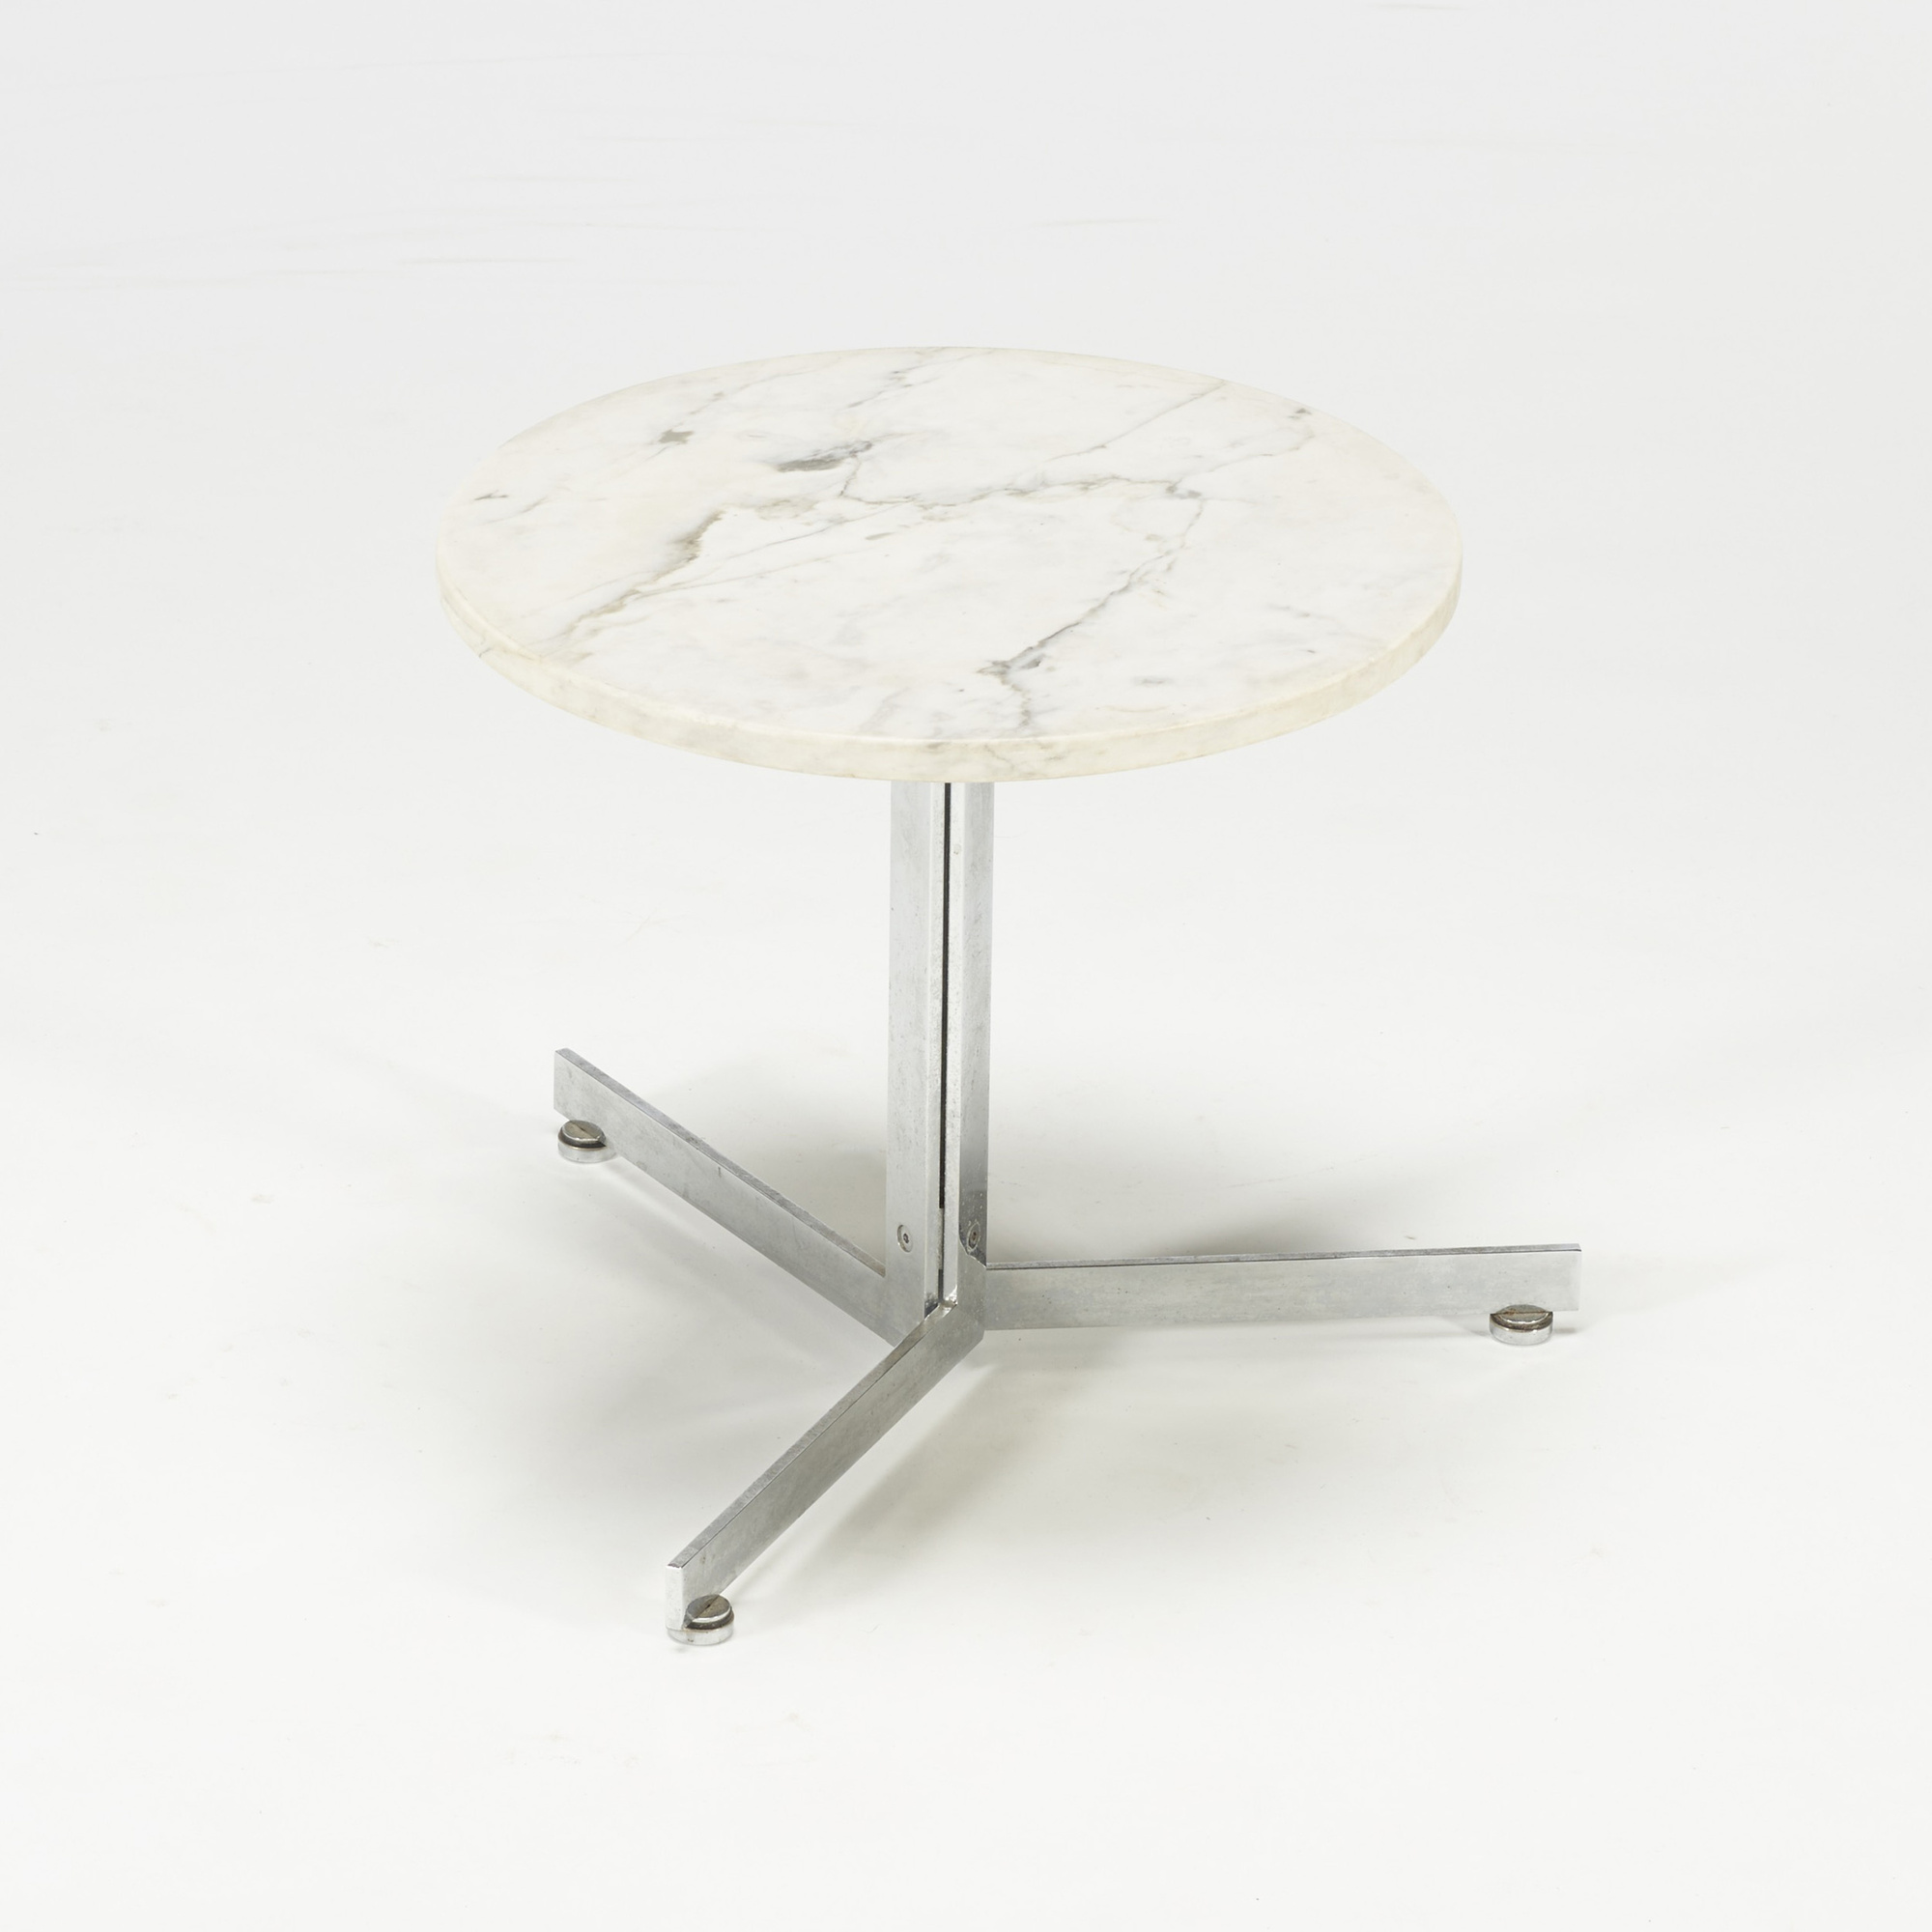 274: Hans Eichenberger / occasional table (2 of 2)